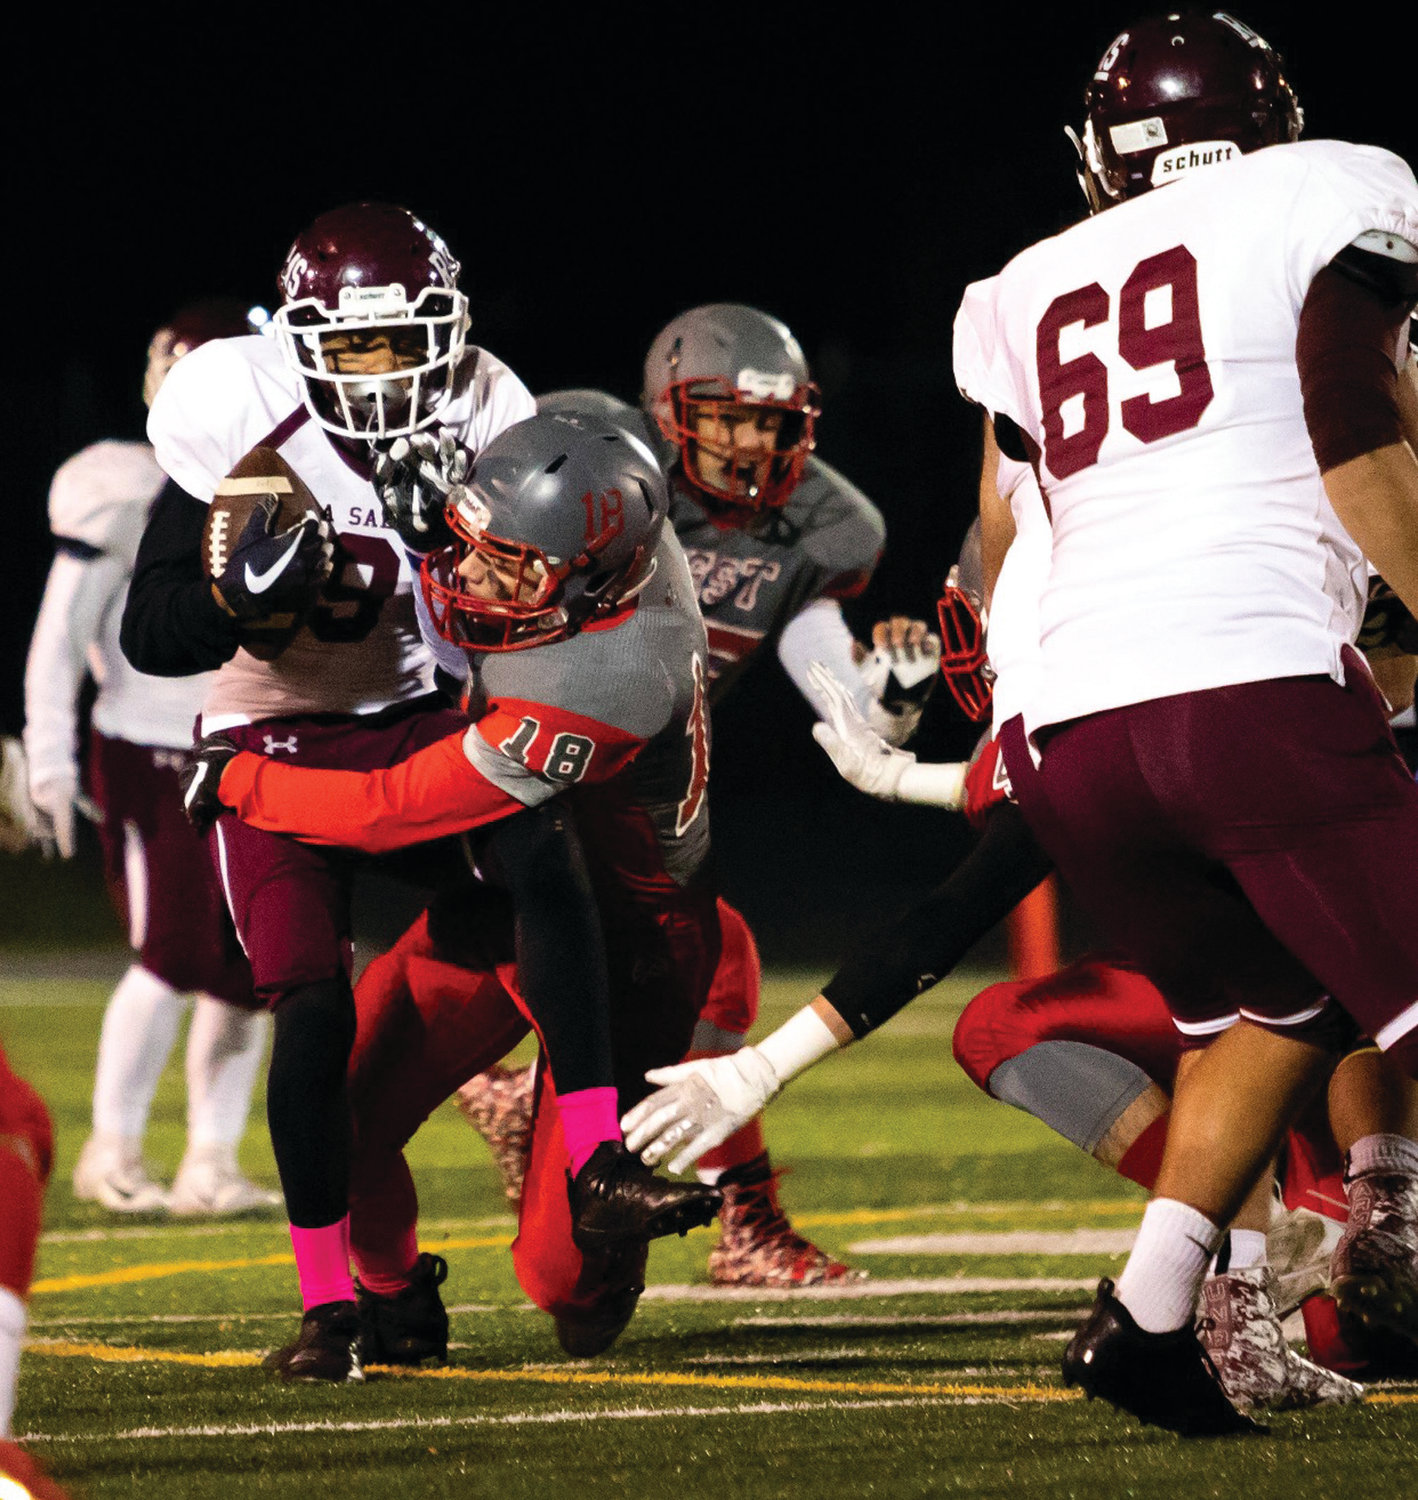 MAKING THE TACKLE: Cranston West's Noah Robert makes a tackle.